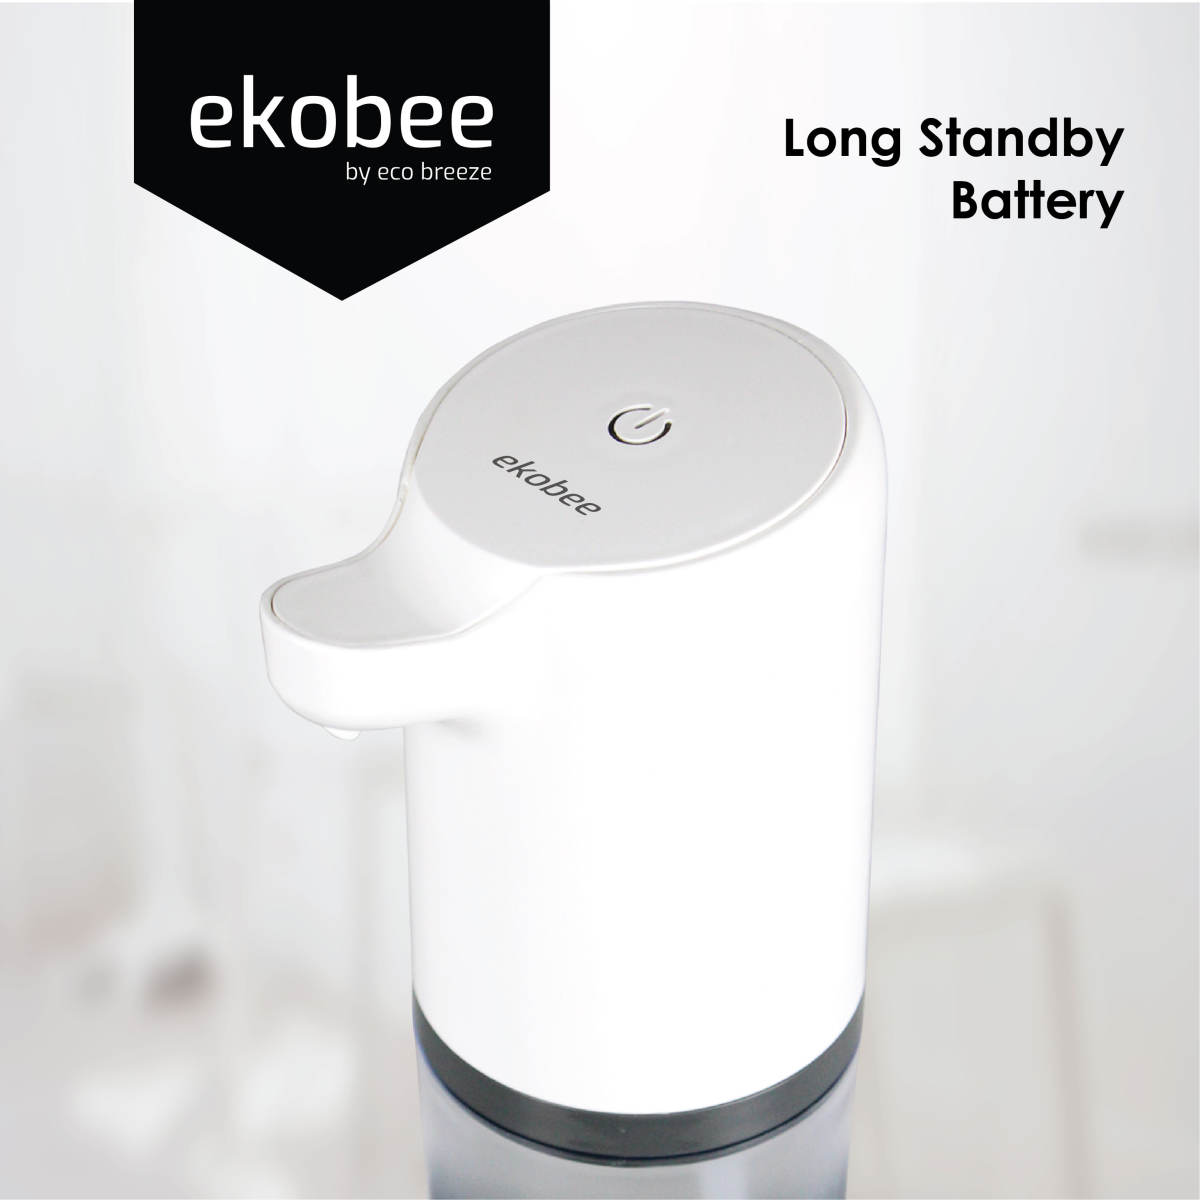 [Local] Automatic Contactless Foaming Dispenser with Infrared Motion Activated Sensor - Dishwasher, Shampoo or Soap